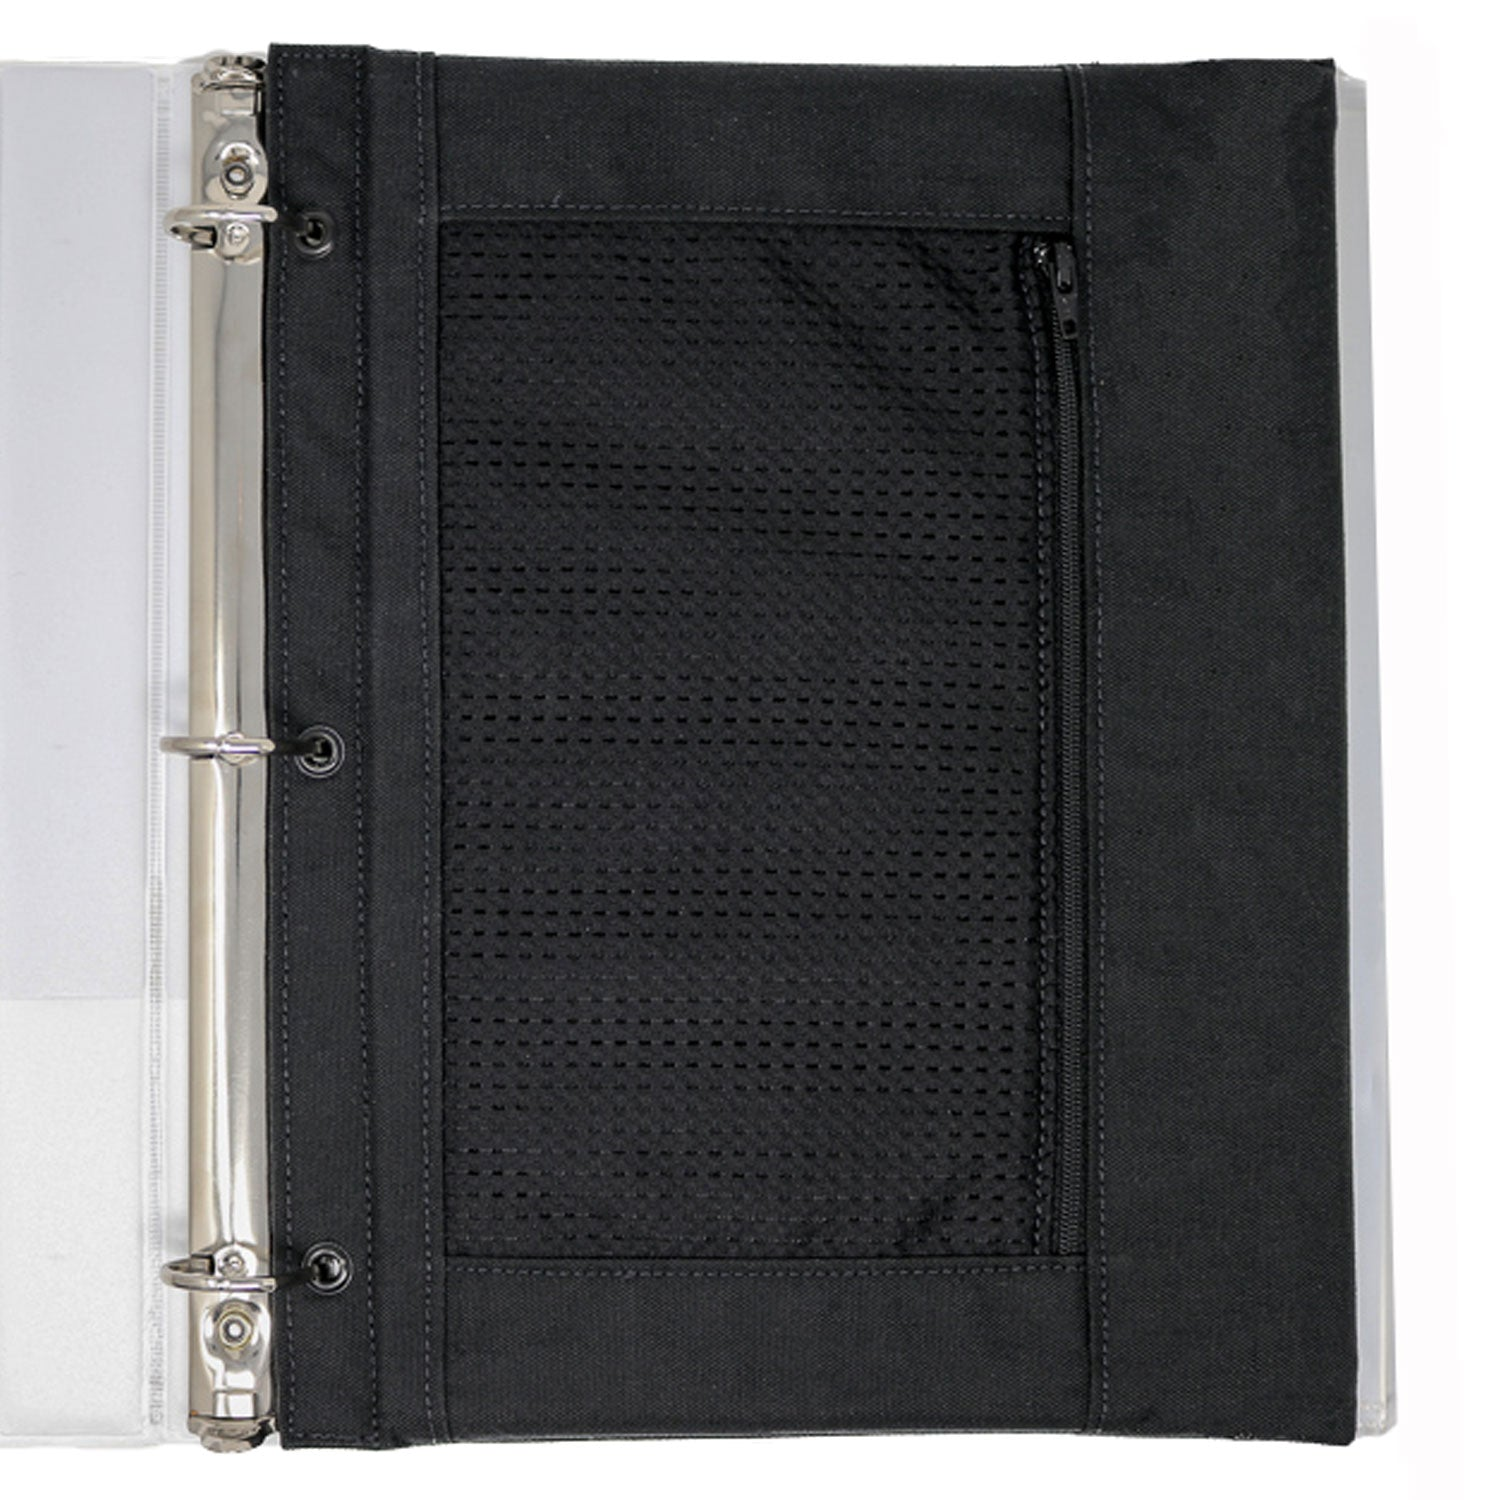 Premier Body Armor Level IIIA 3-Ring Pencil Pouch